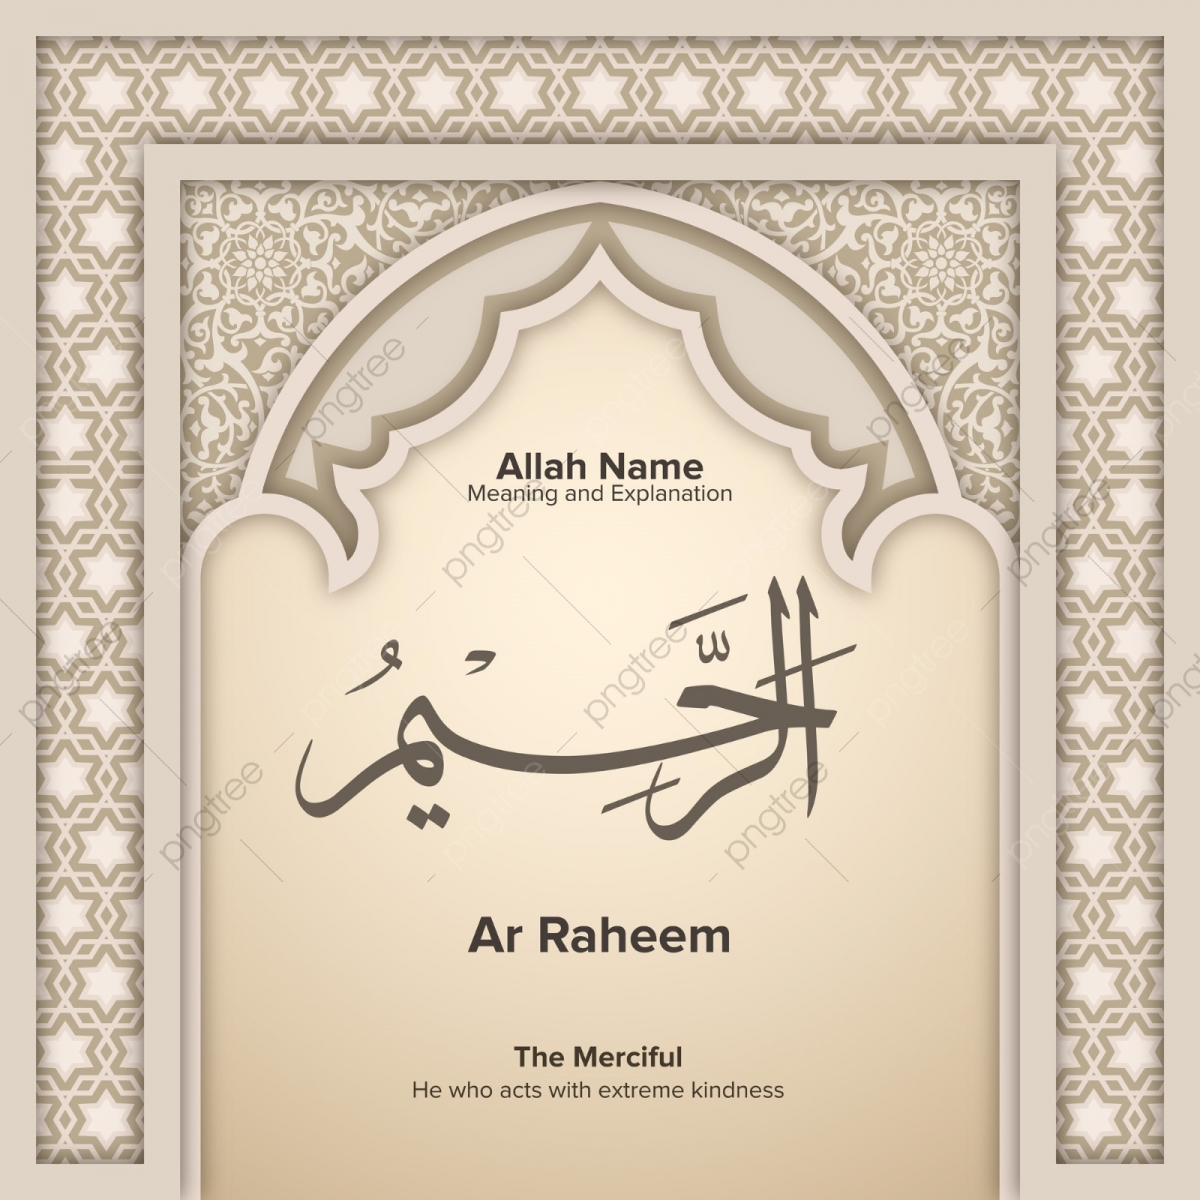 Ar Raheem 99 Names Of Allah With Meaning And Explanation, Al